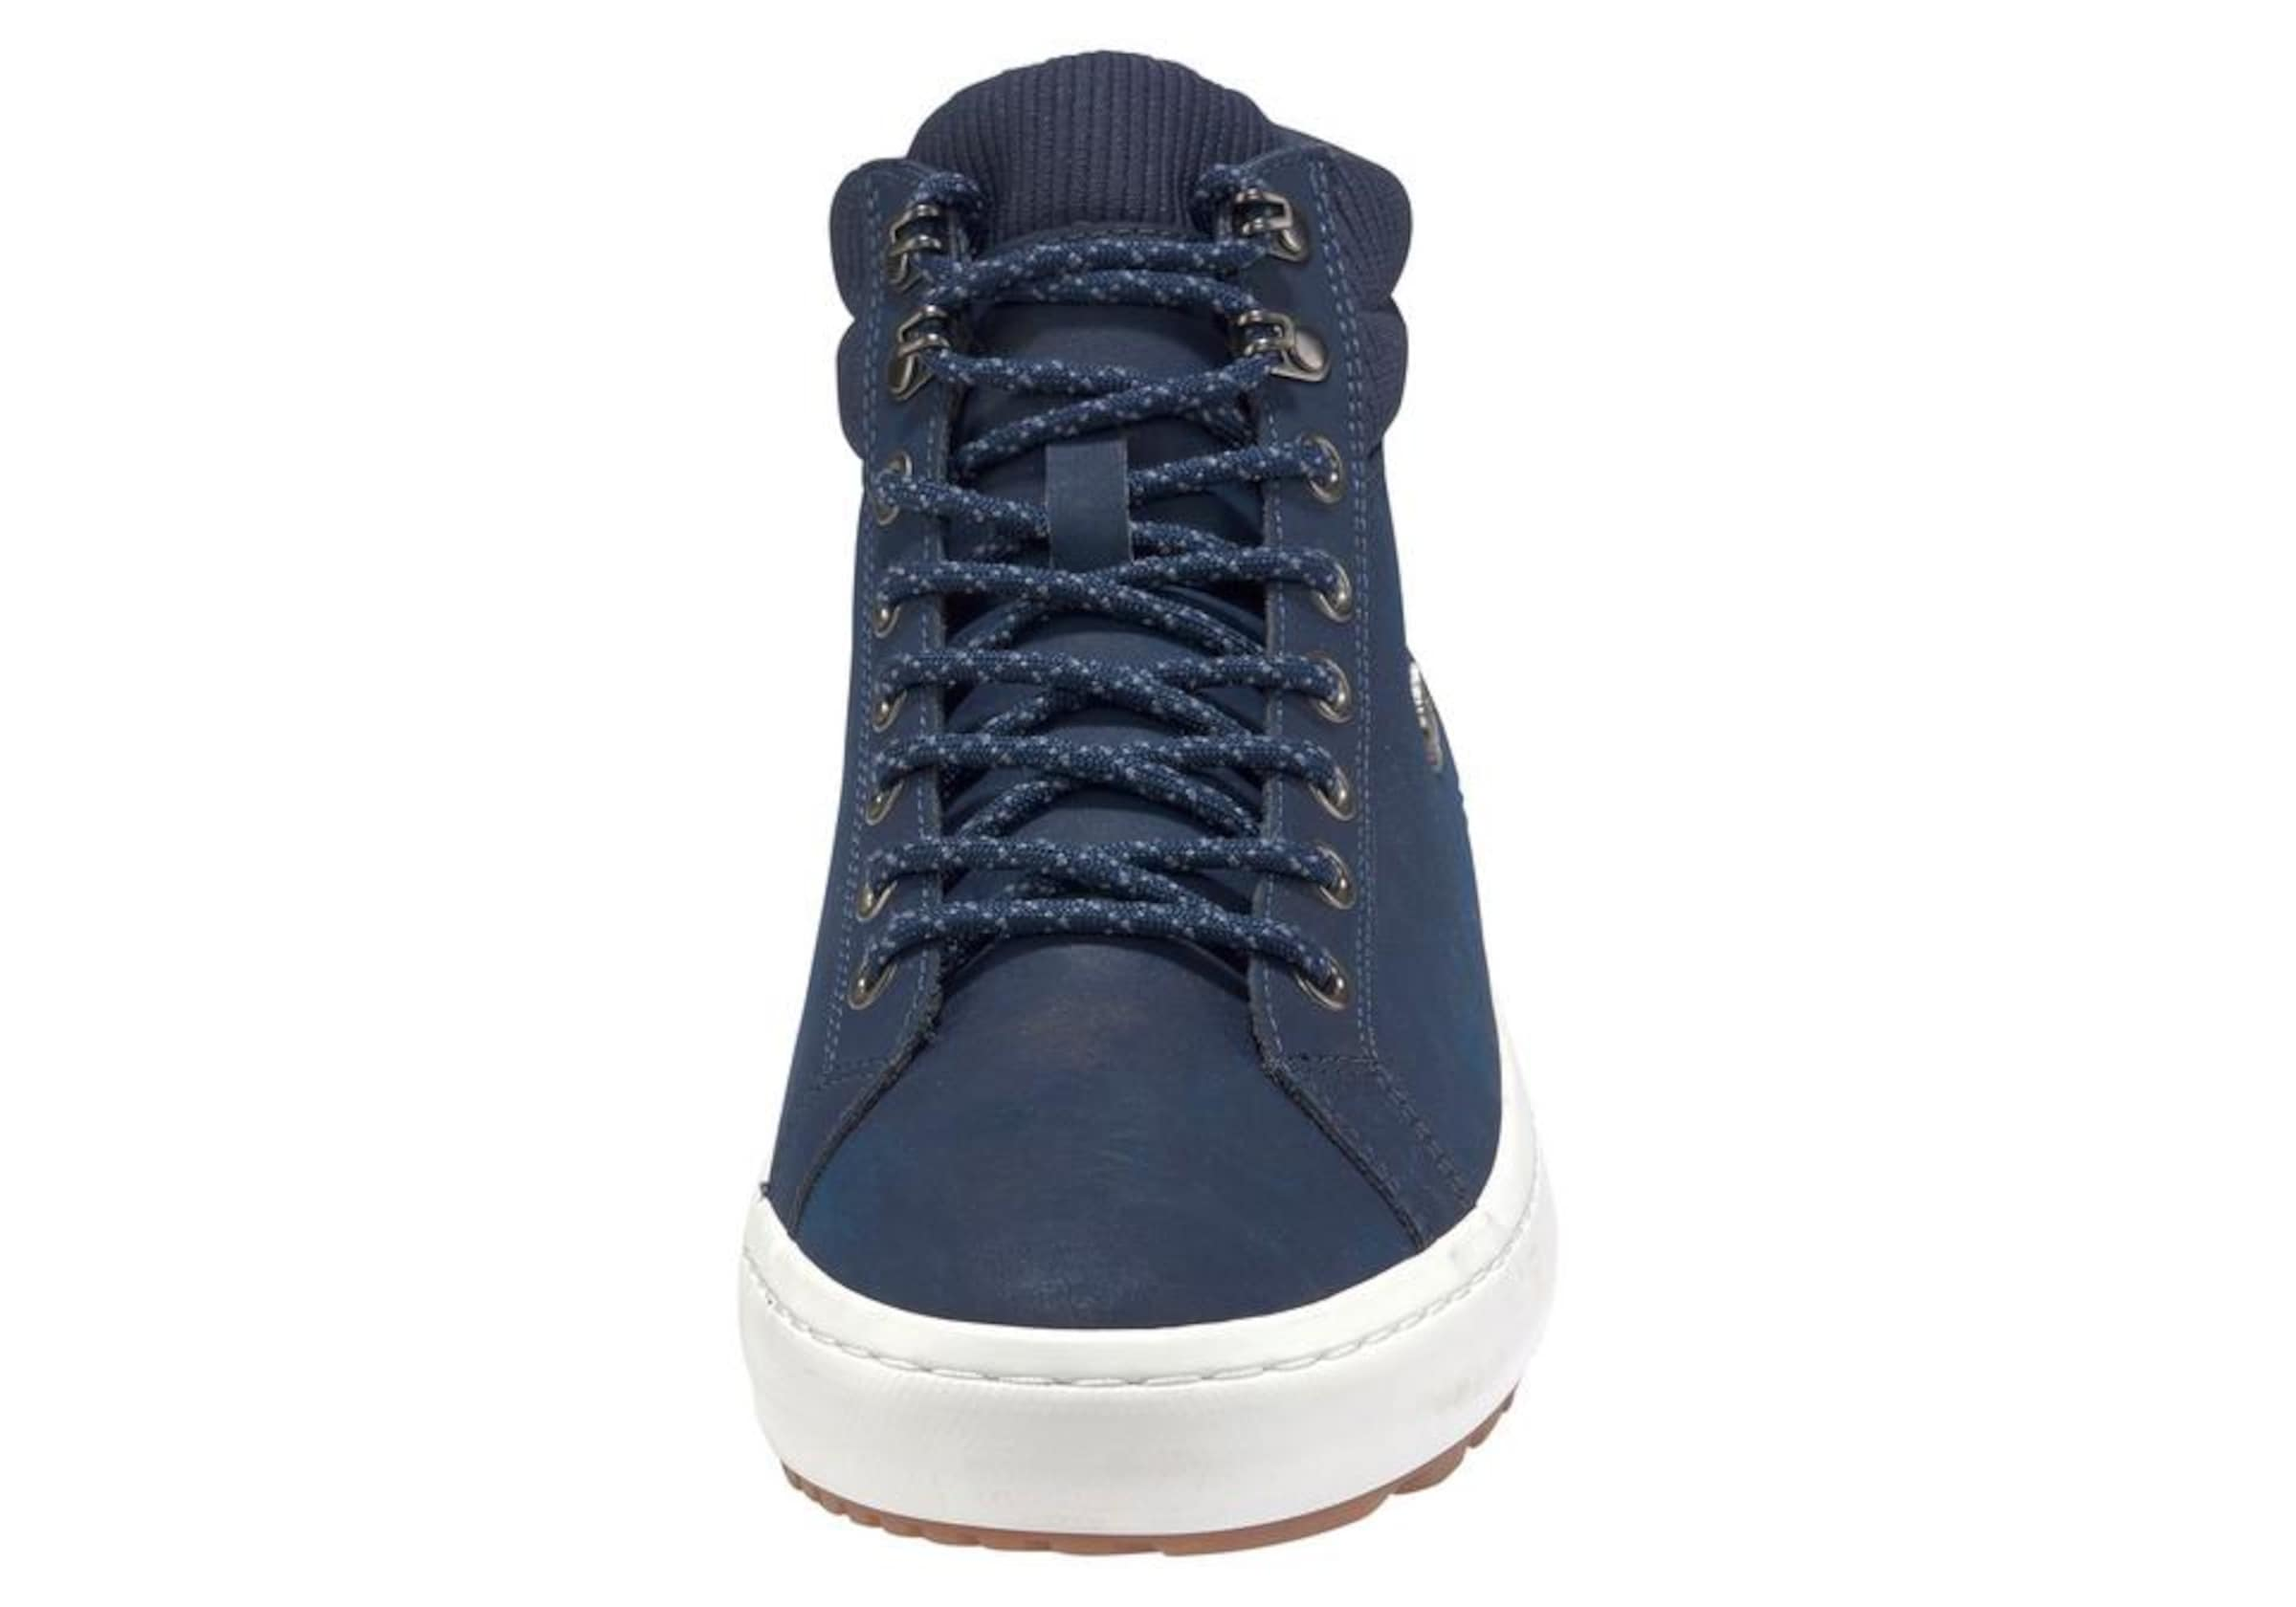 'straightset' In In Lacoste Lacoste DunkelblauBraun Sneaker DunkelblauBraun Sneaker 'straightset' lOiuXZwPkT